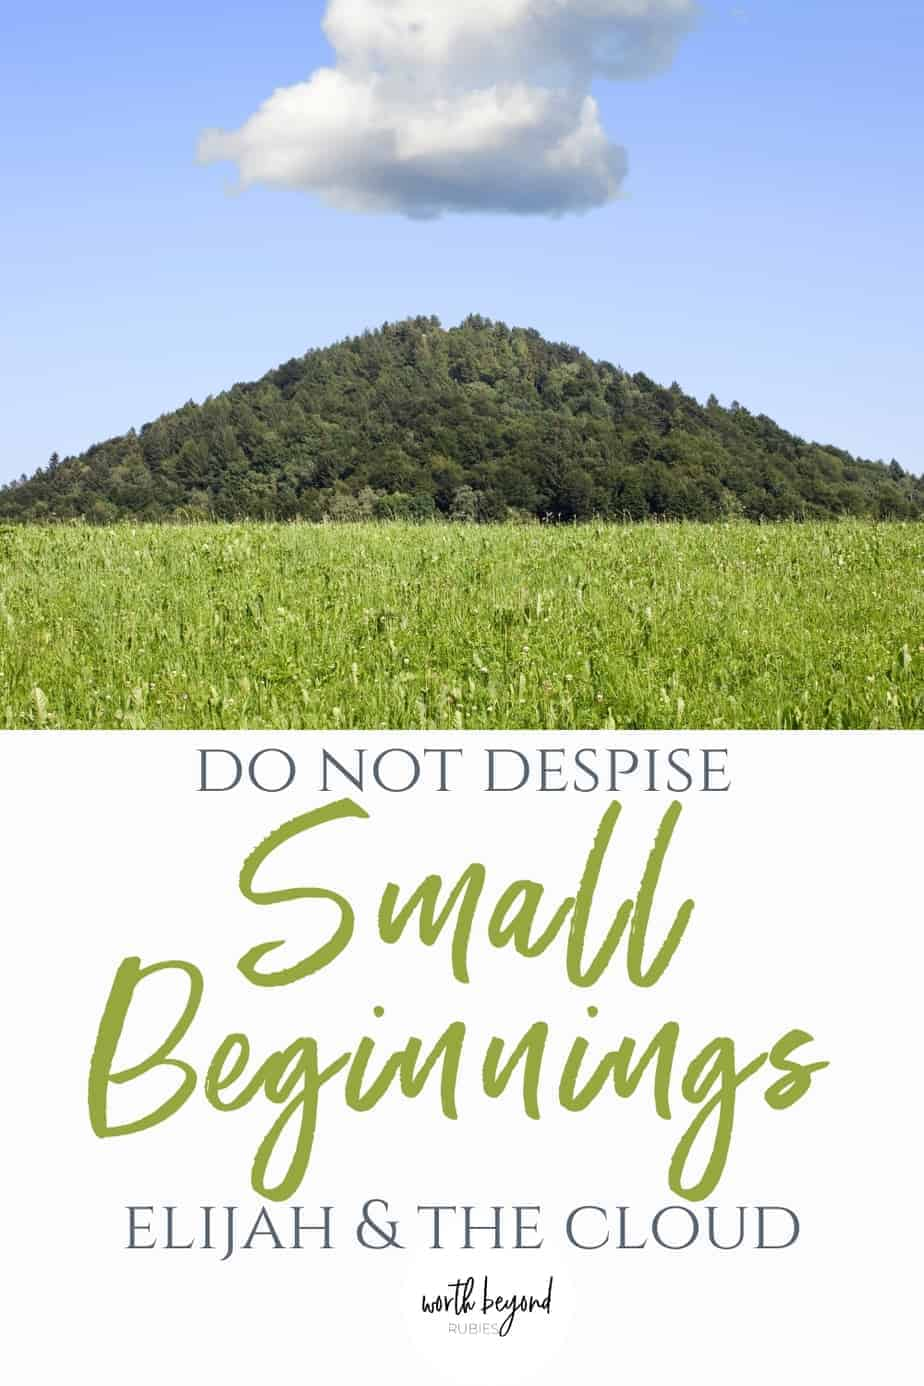 Small cloud above a mountaintop with text that says Do Not Despise Small Beginnings - Elijah and the Cloud